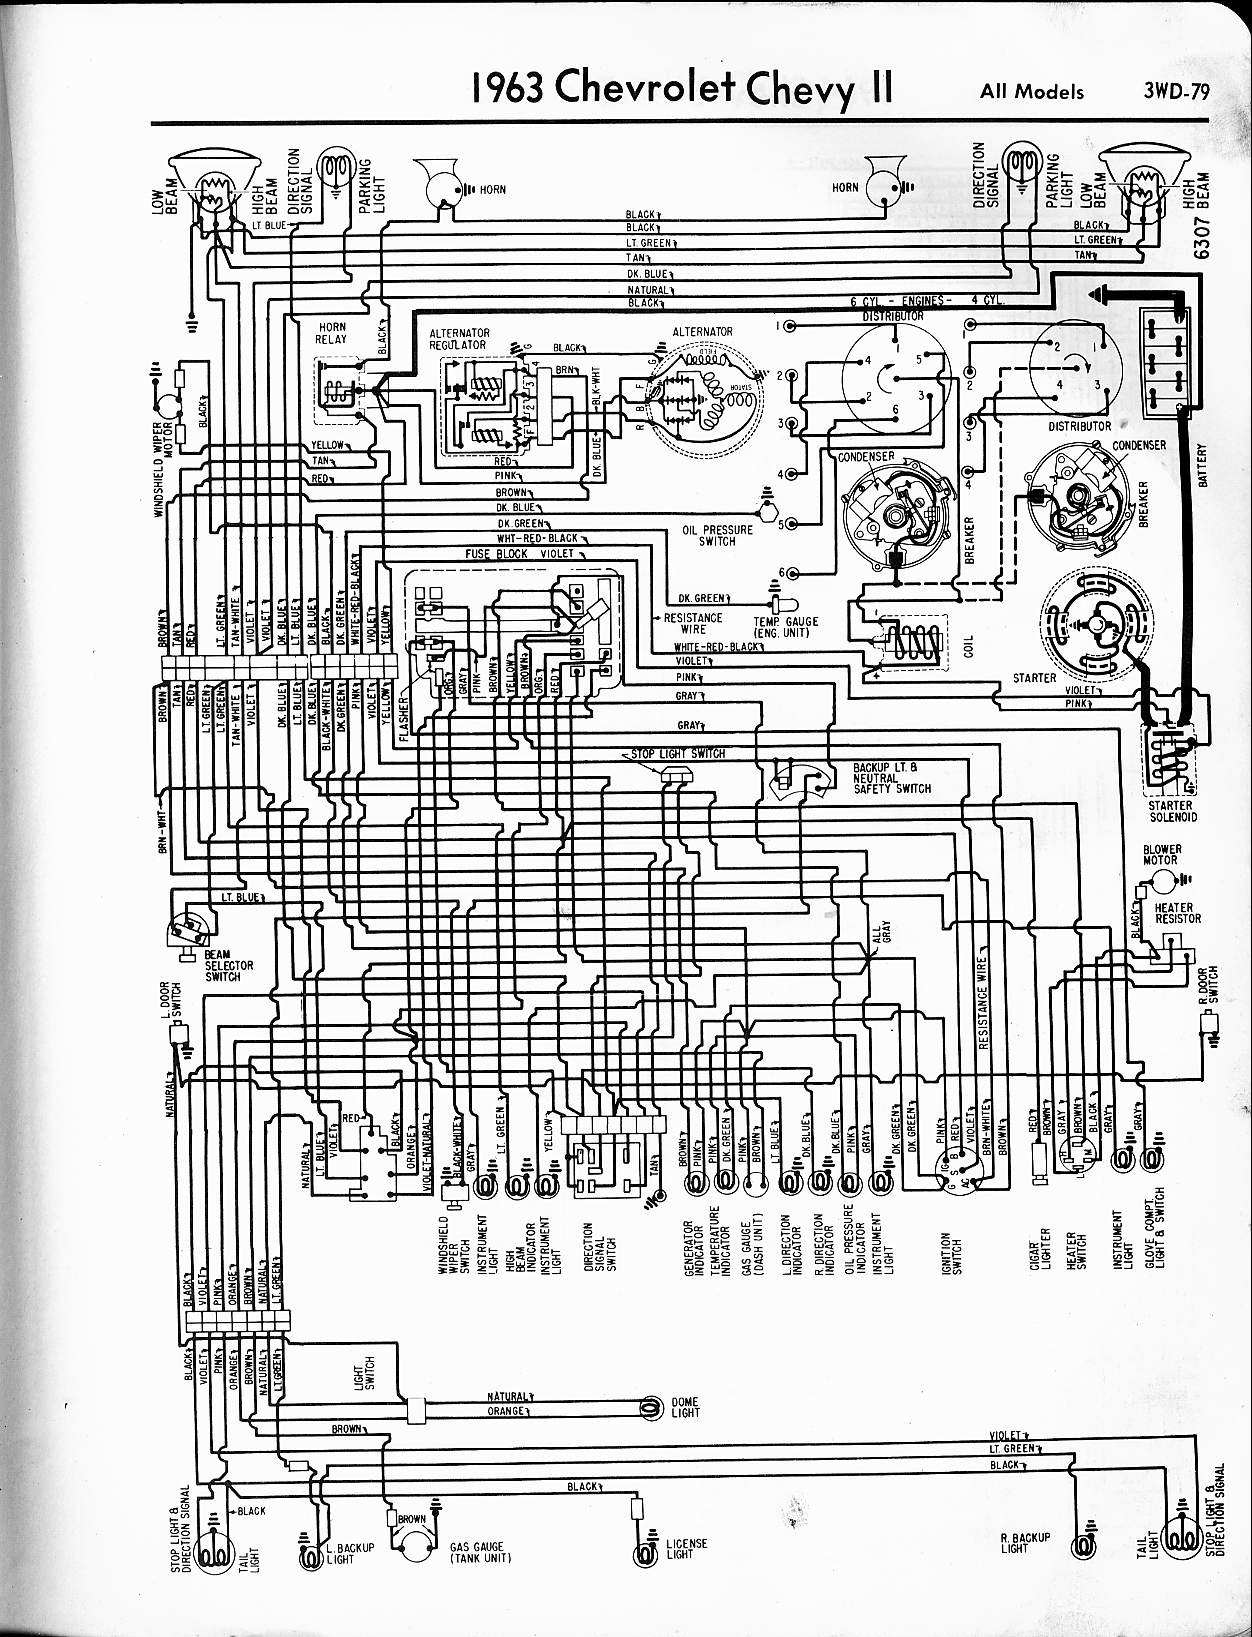 MWireChev63_3WD 079 57 65 chevy wiring diagrams 3 Wire Headlight Wiring Diagram at mifinder.co